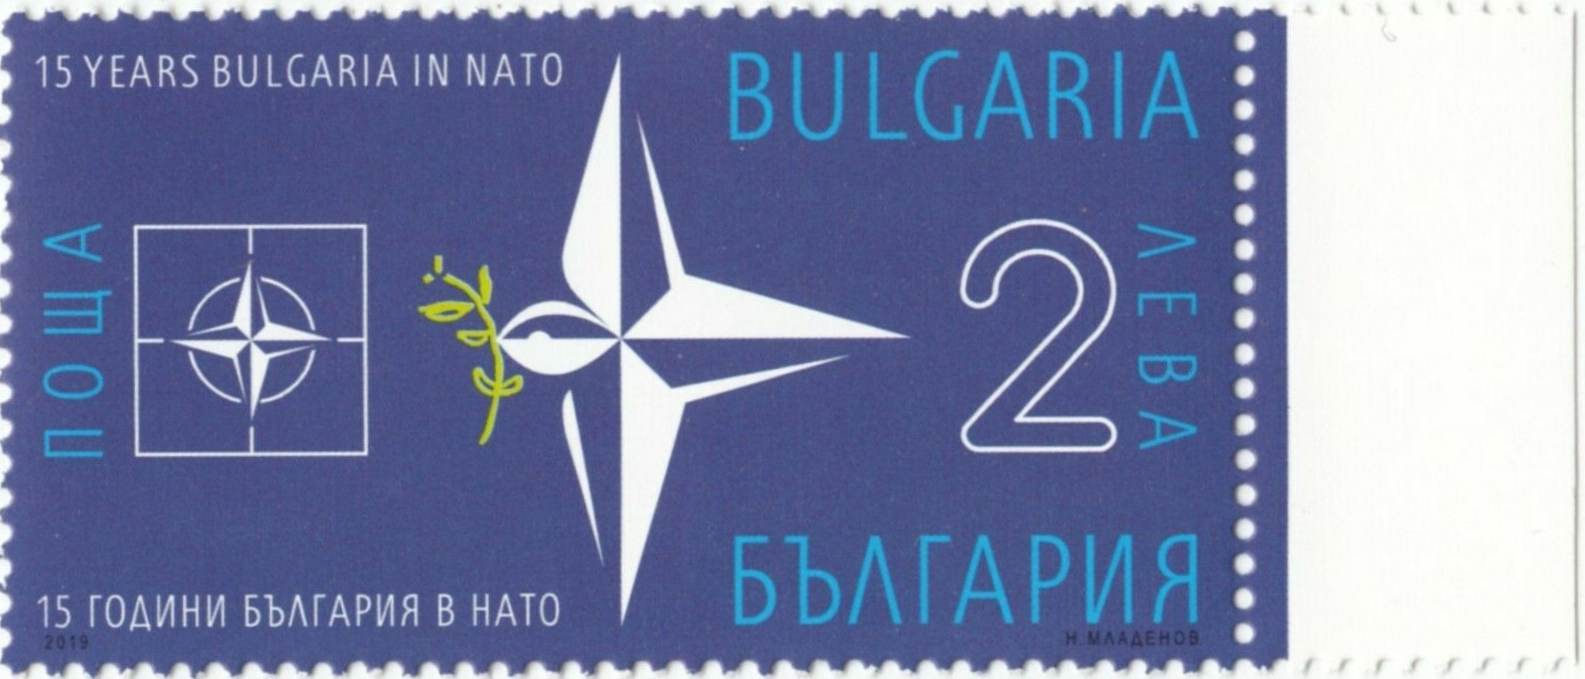 Bulgaria - 15th Anniversary of Bulgaria in NATO (February 20, 2019)